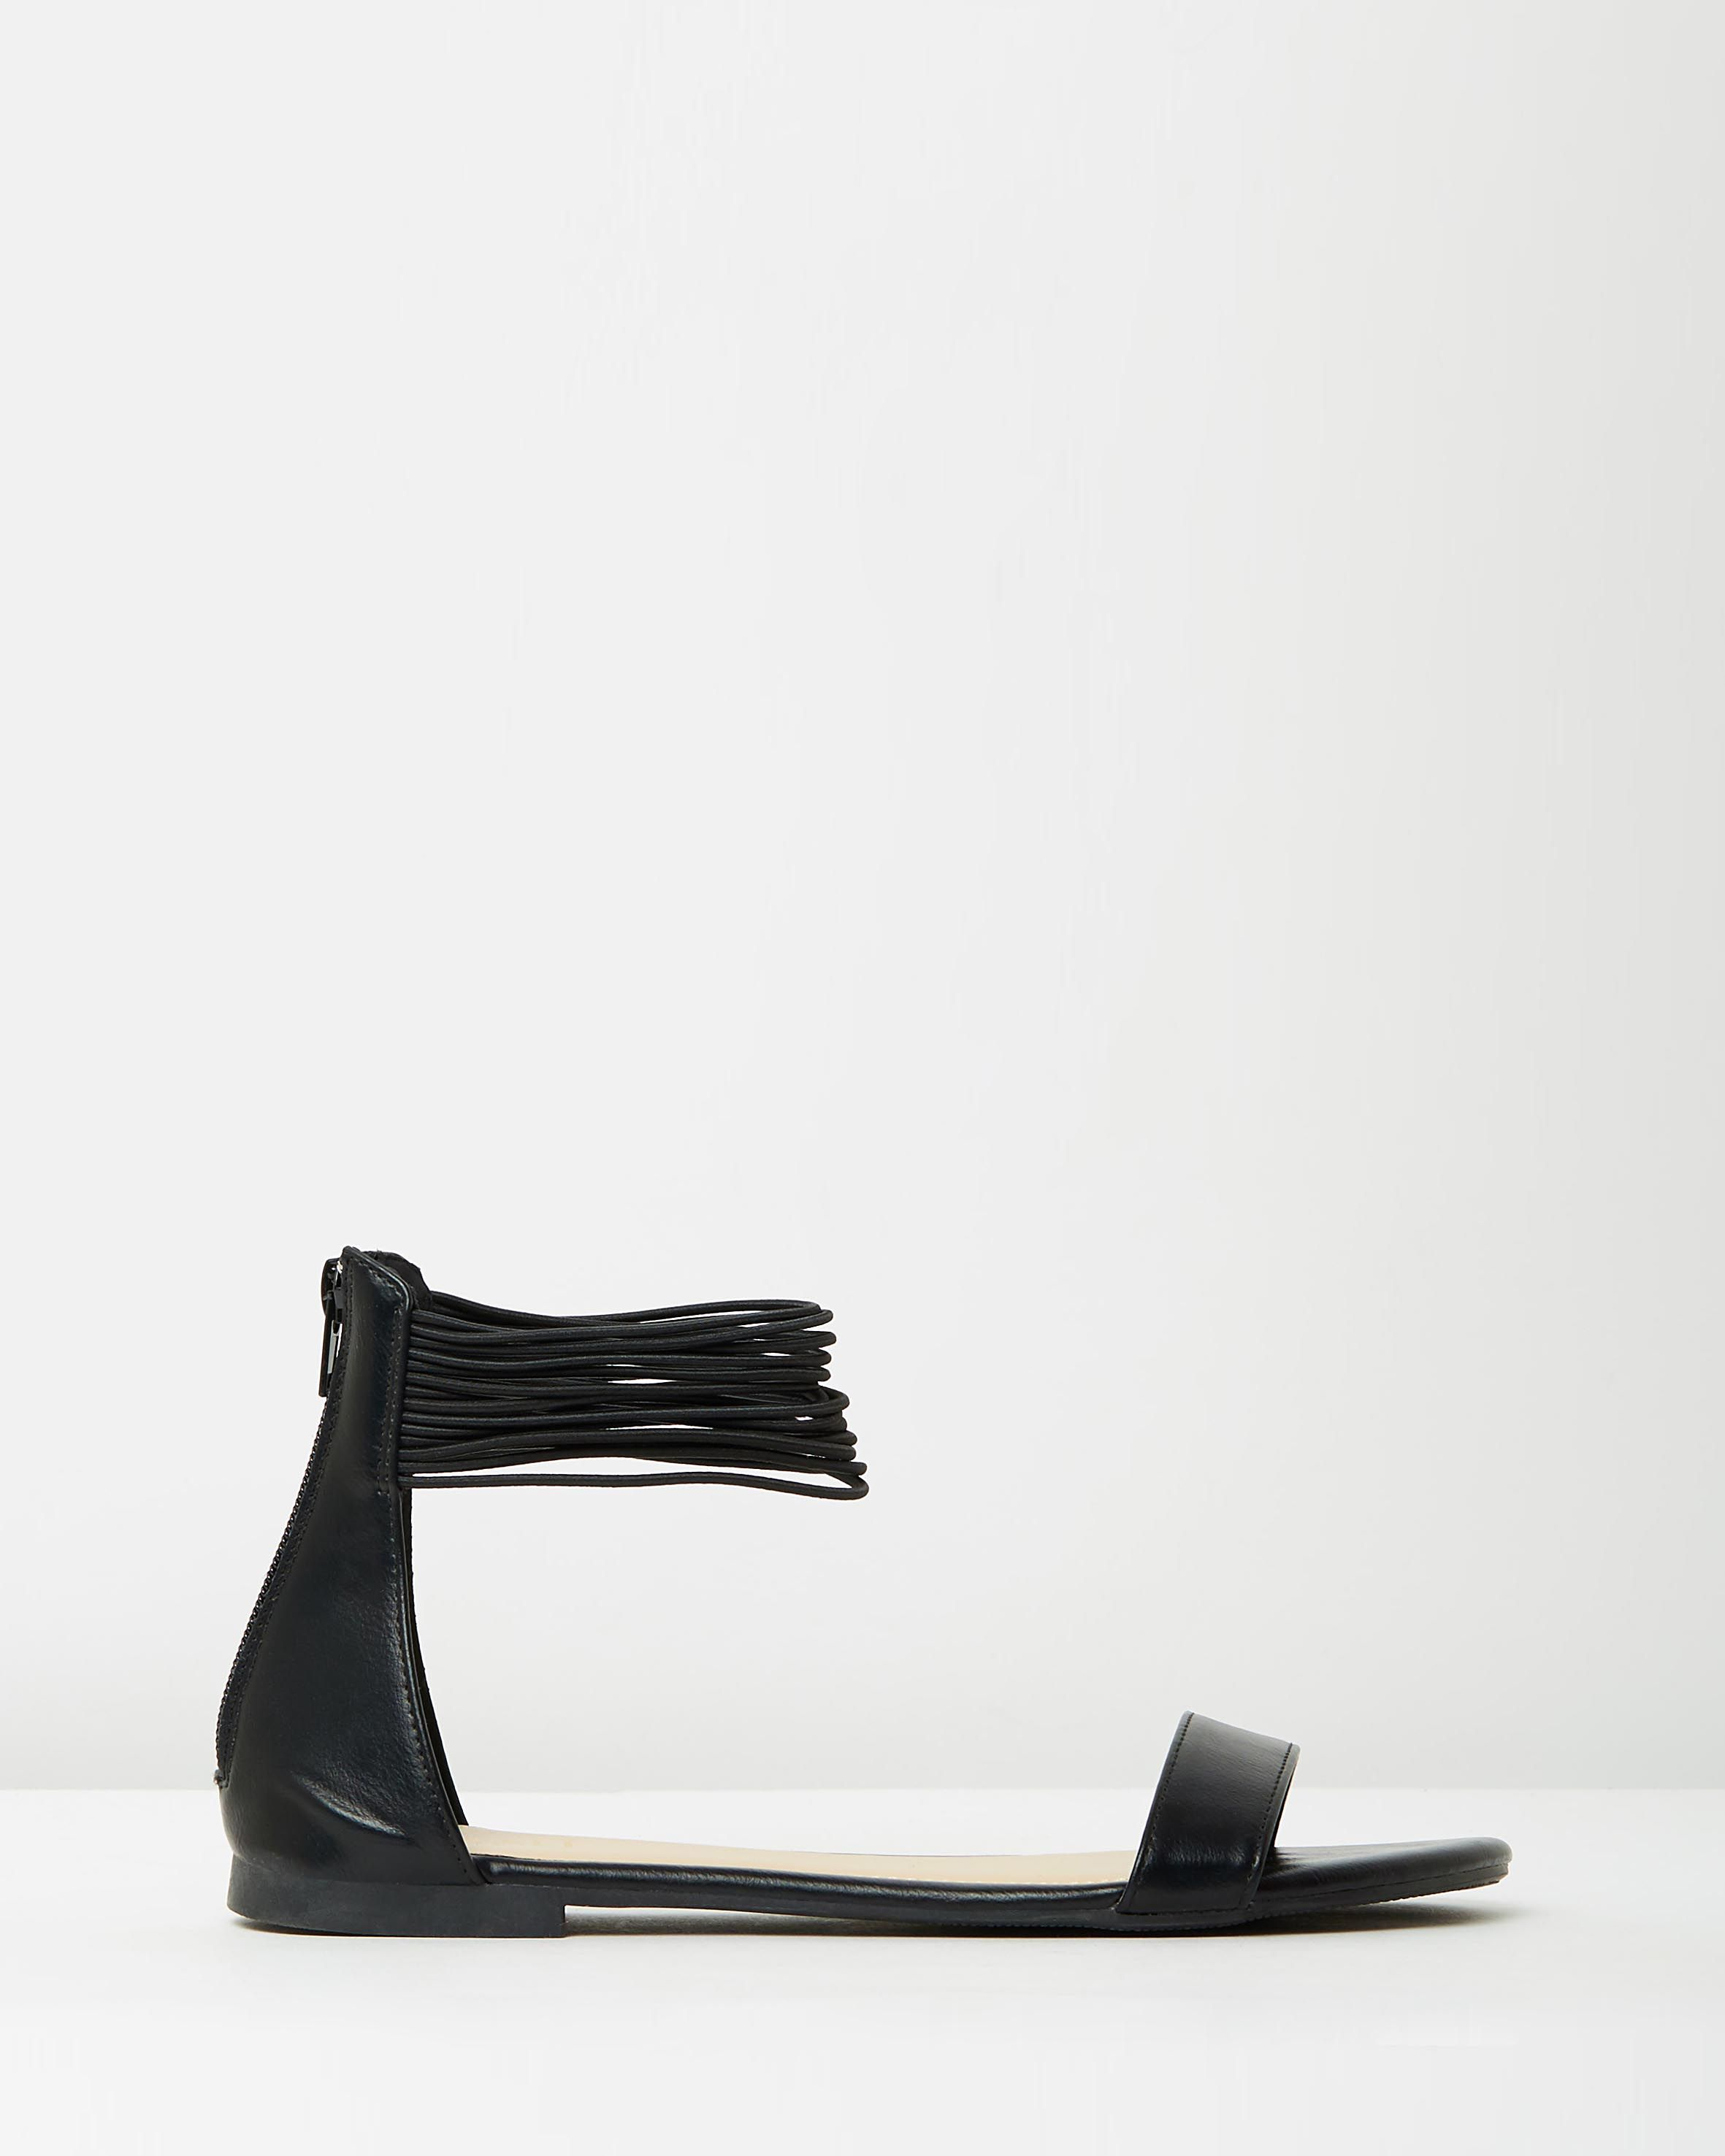 Bailey sandals - The Iconic